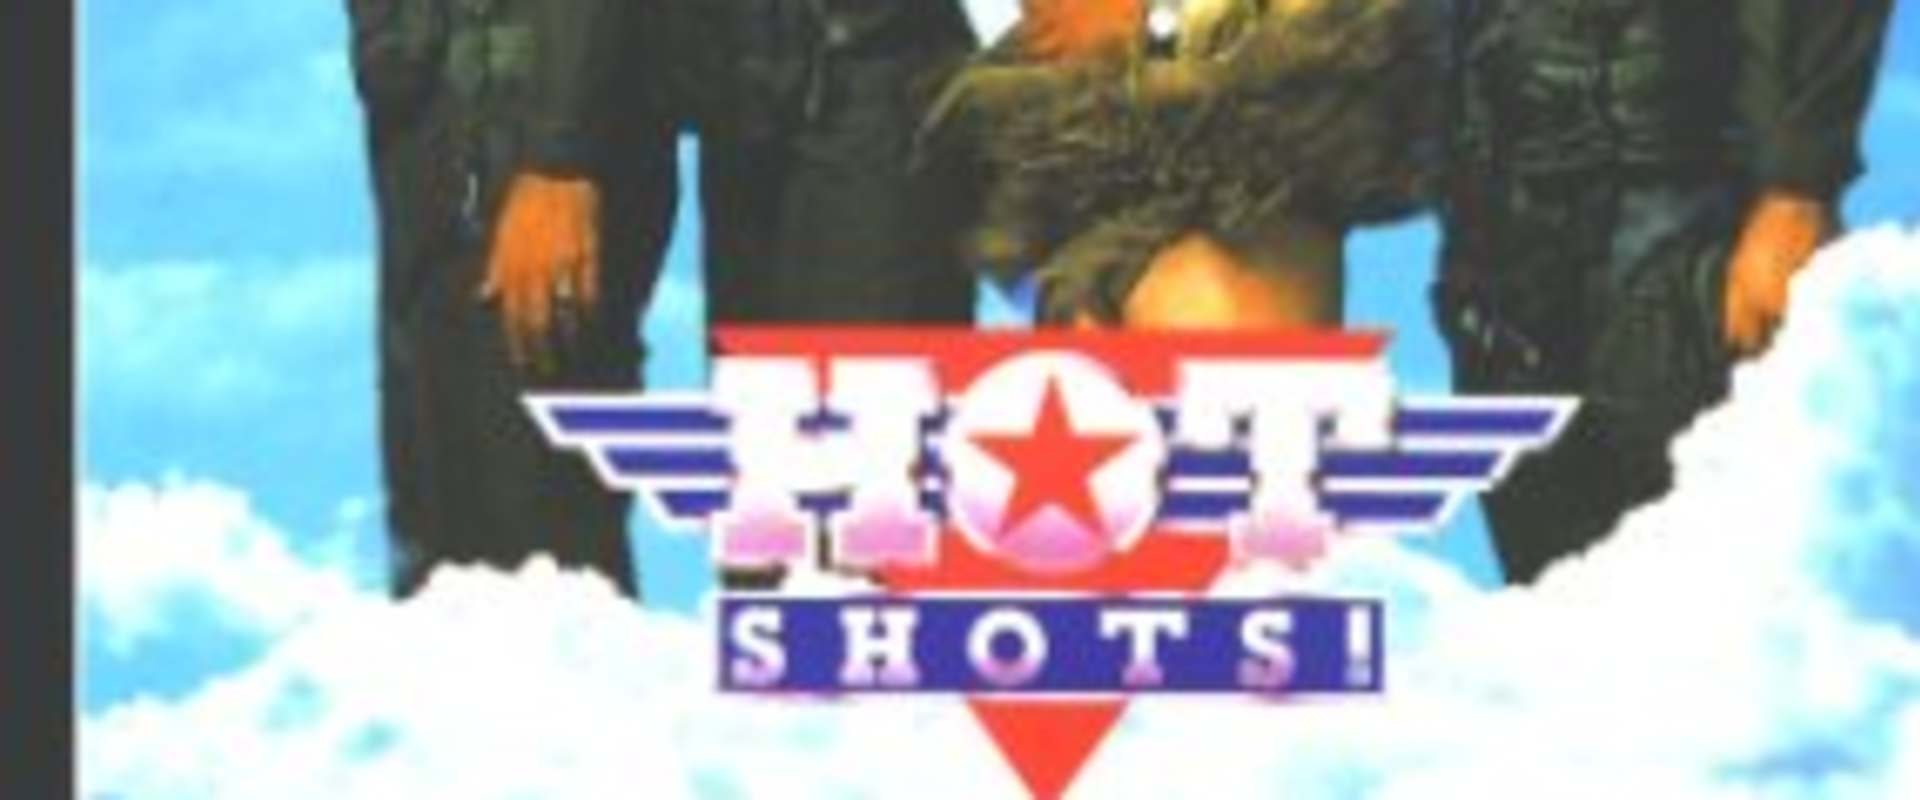 Hot Shots! background 2